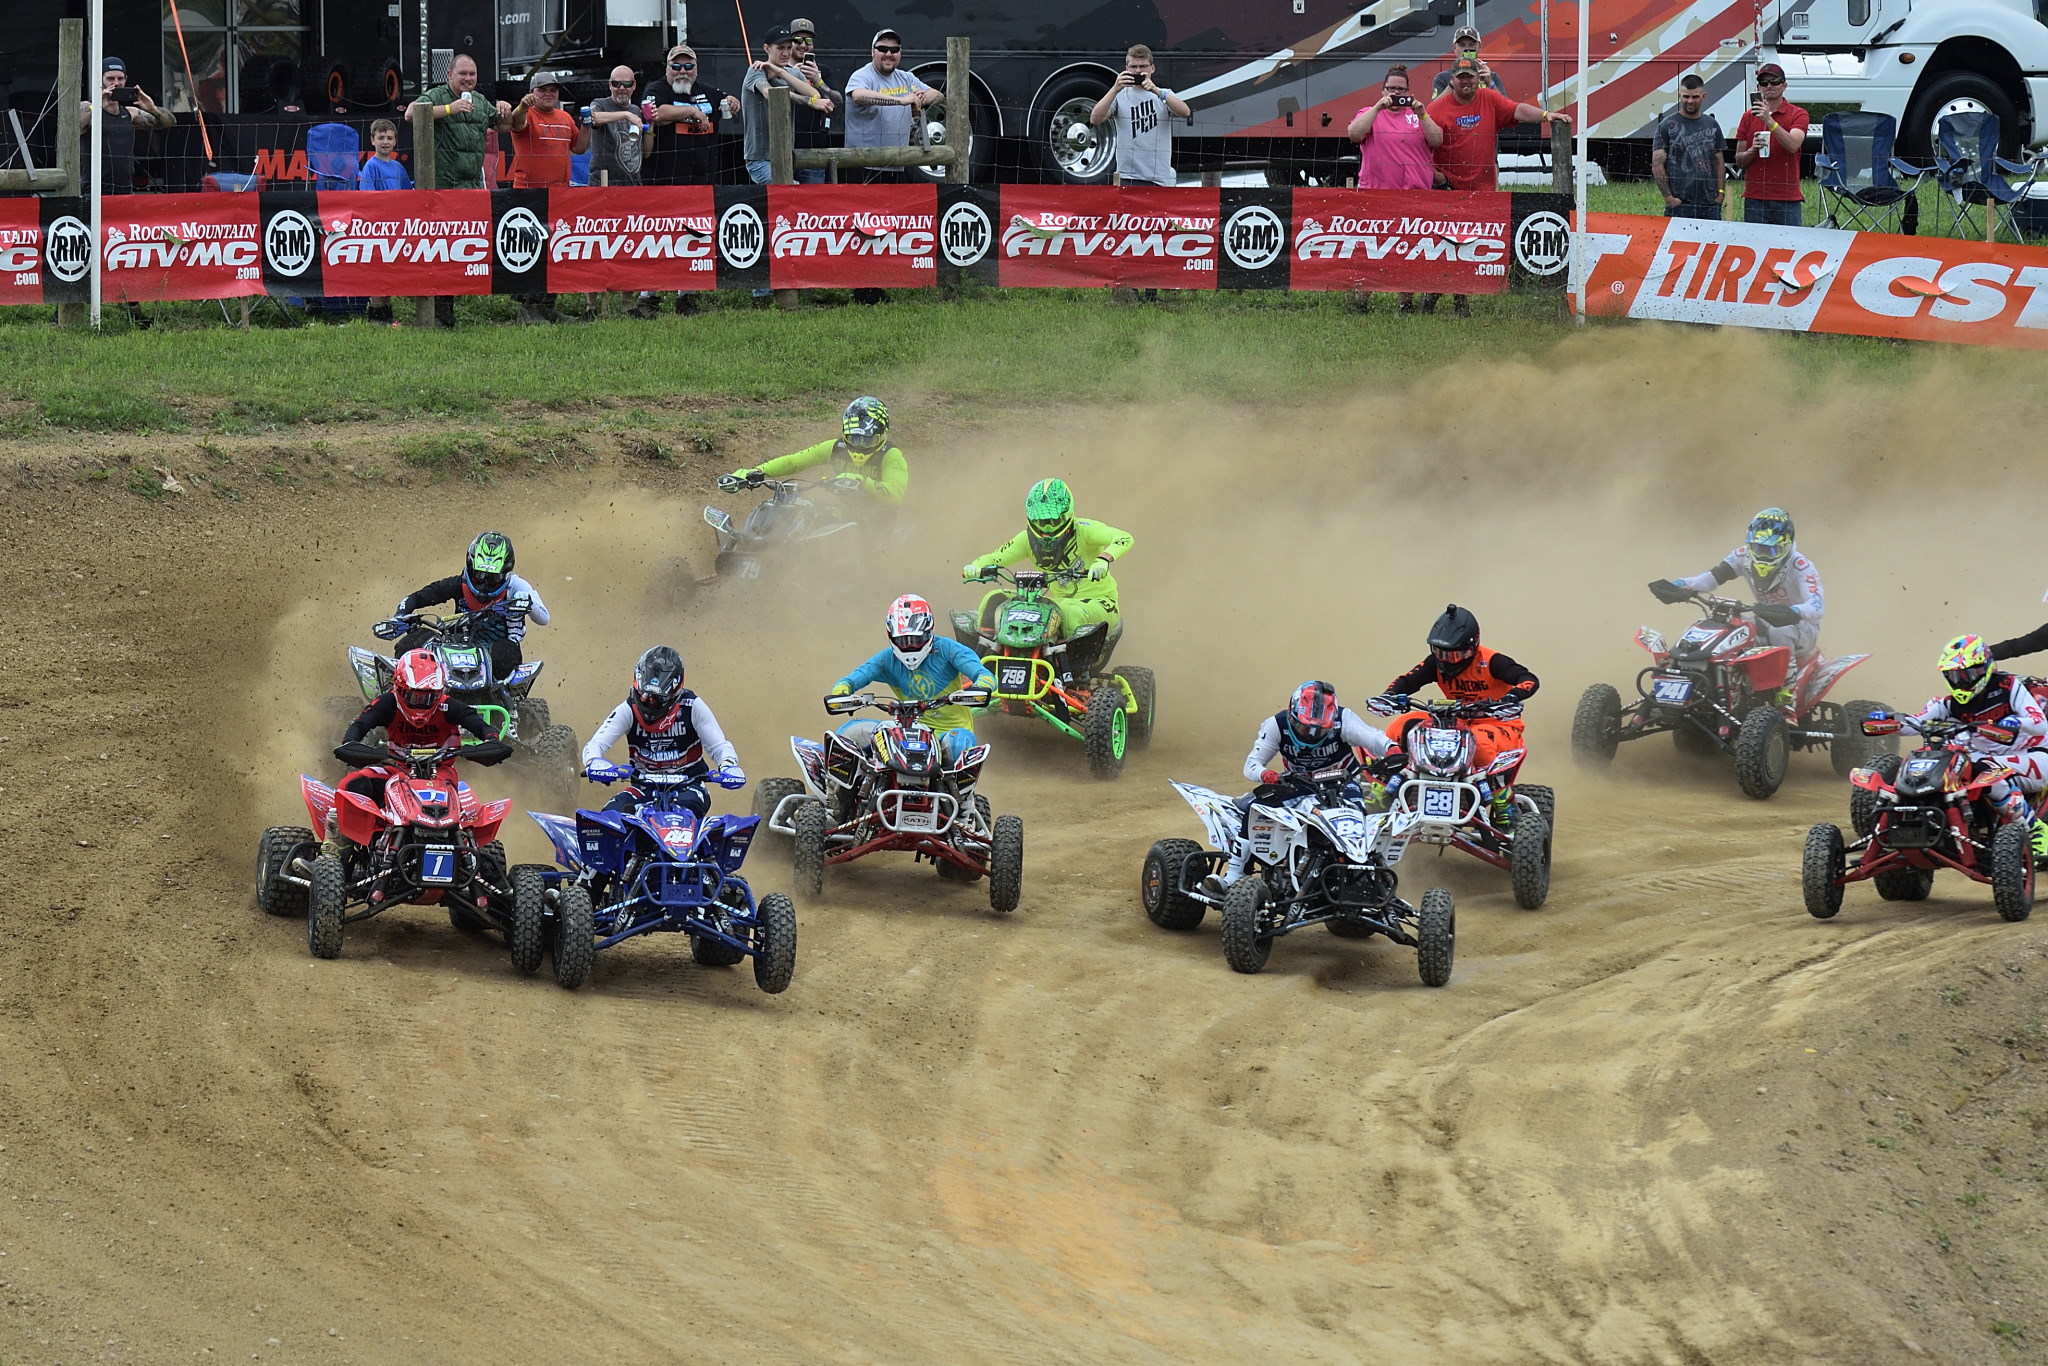 ATV Motocross returns to Pennsylvania for the first time since 2018